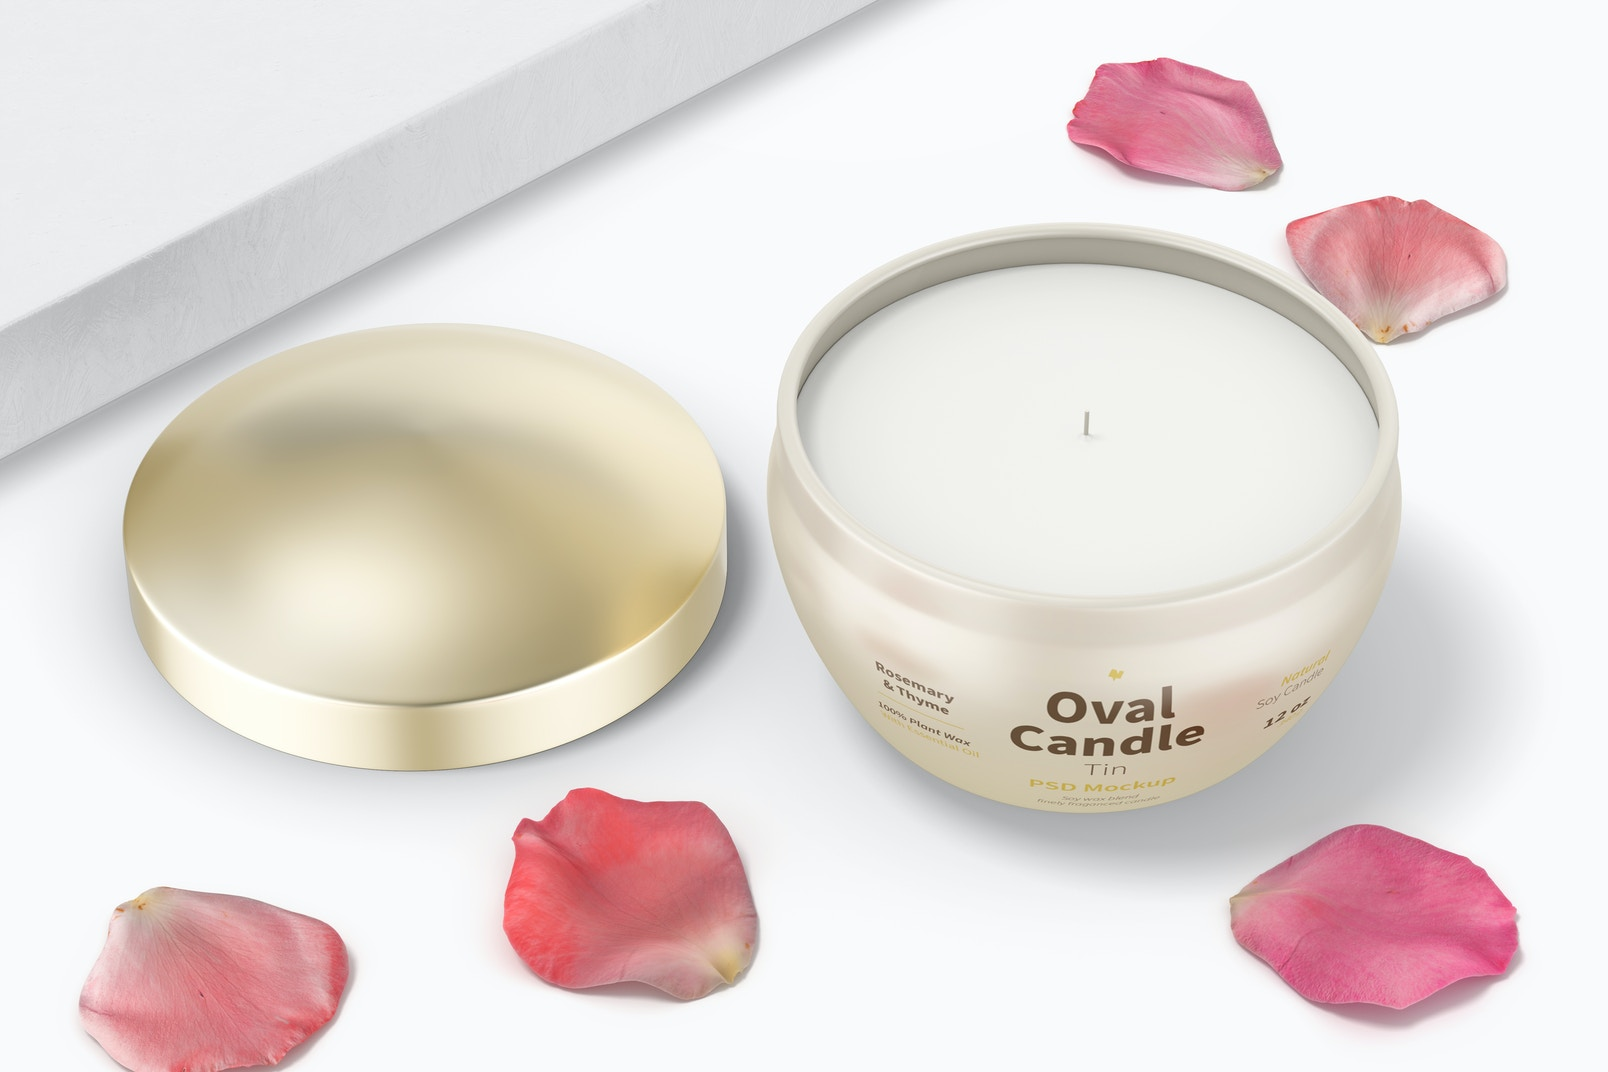 Oval Candle Tin Mockup, Top View